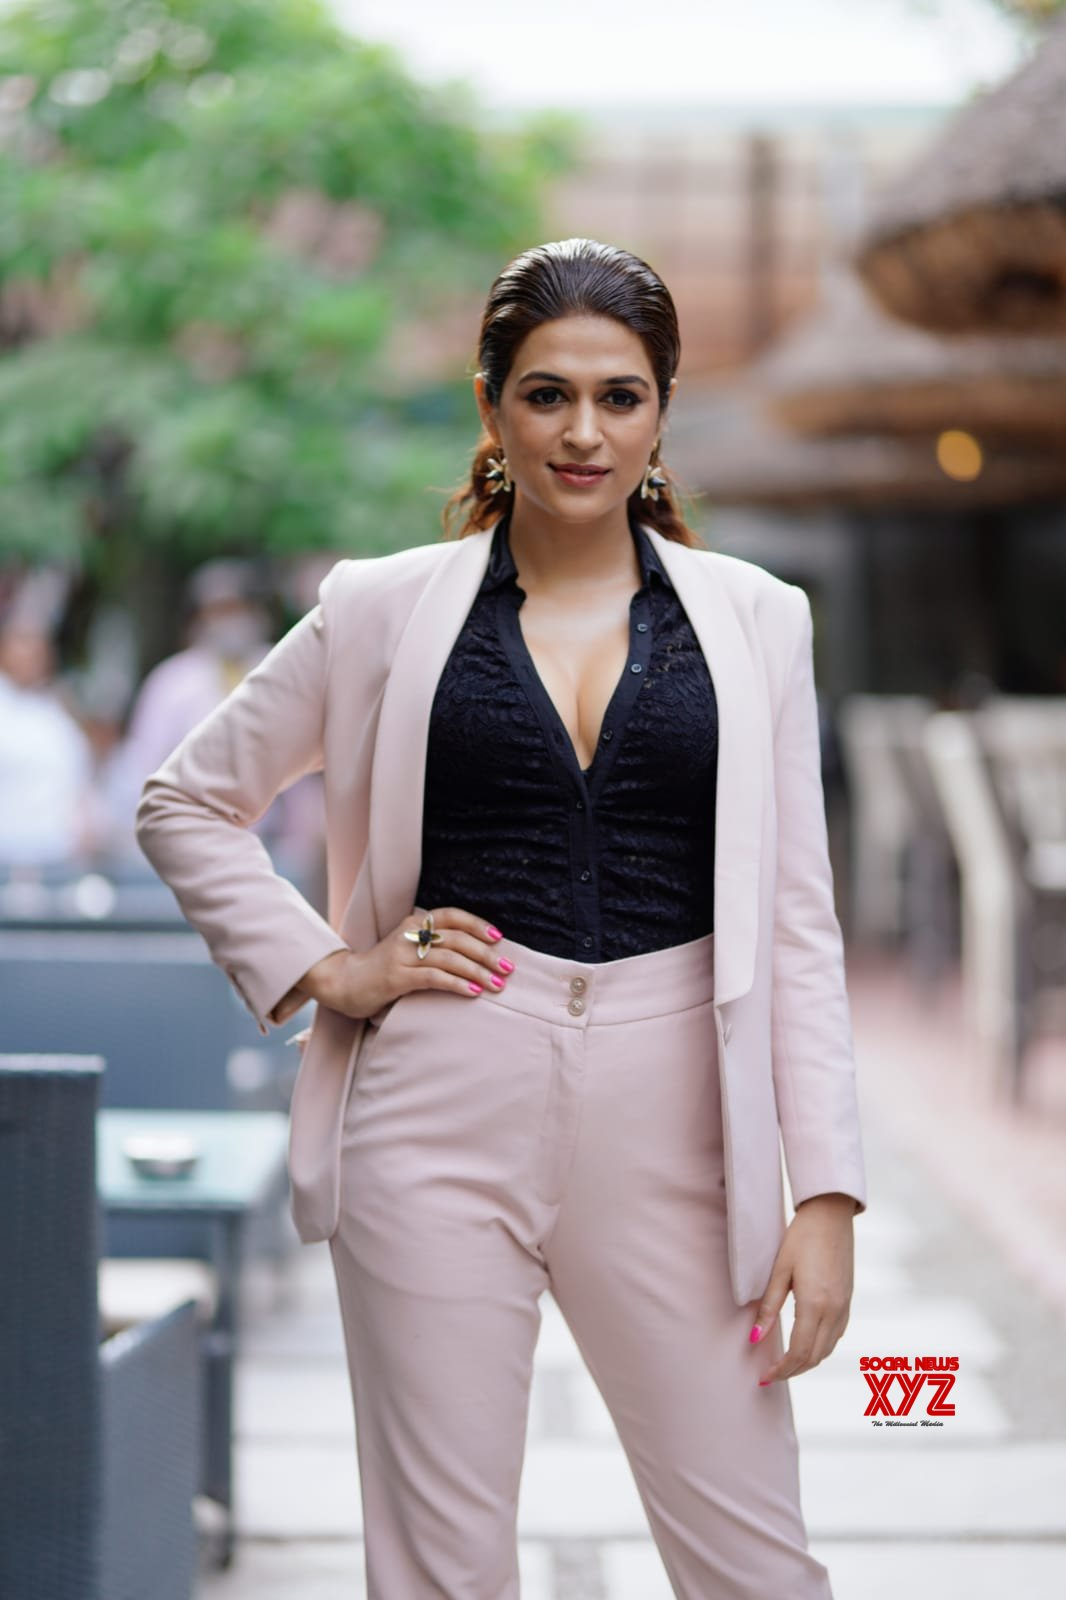 Shraddha Das is acting in a leading role in the Kichcha Sudeep starrer Kotigobba 3 that is releasing this Dusshera and it has sent the industry in a frenzy